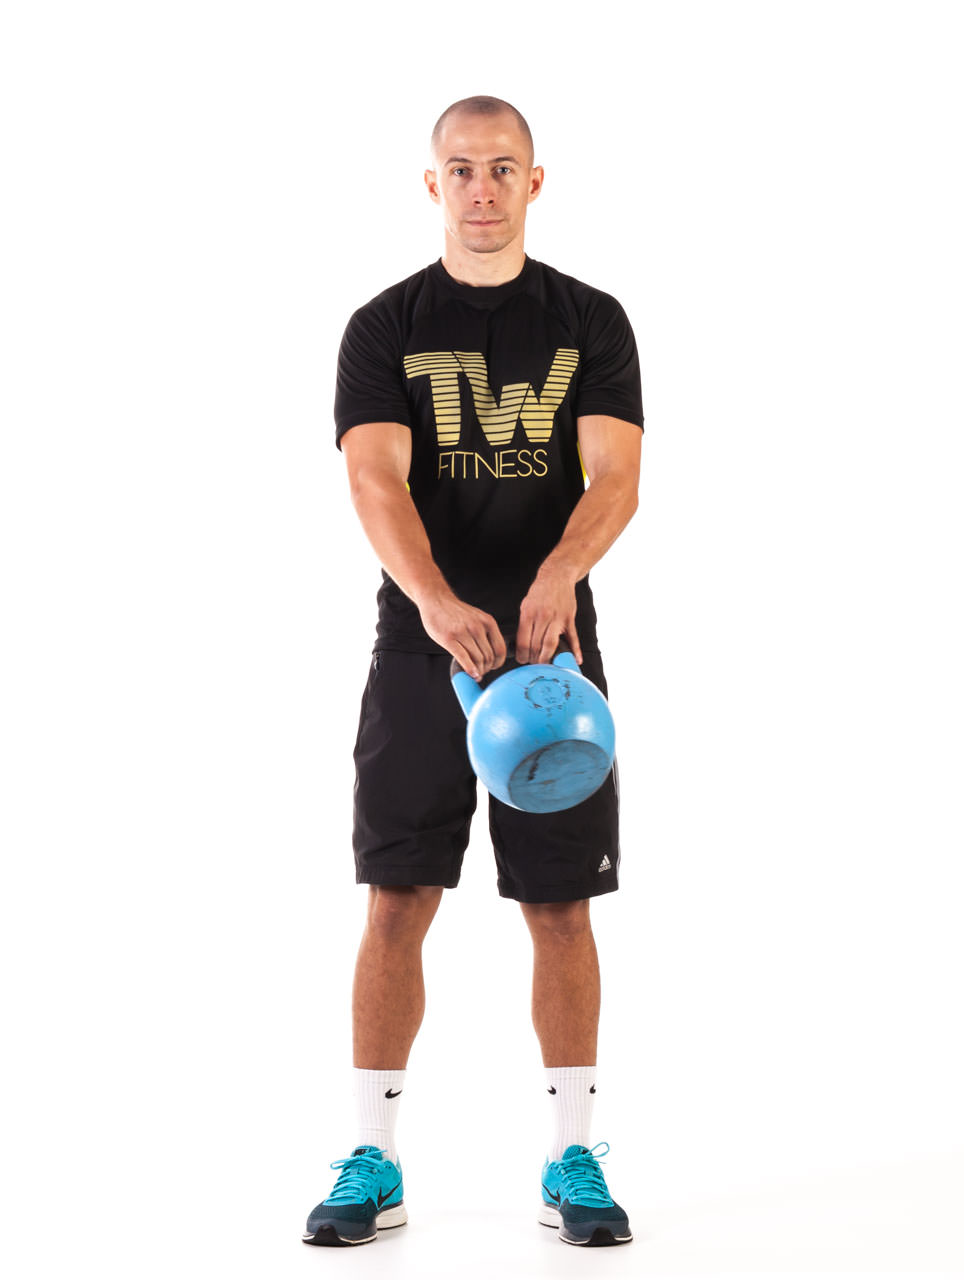 Kettlebell Around the Body frame #5